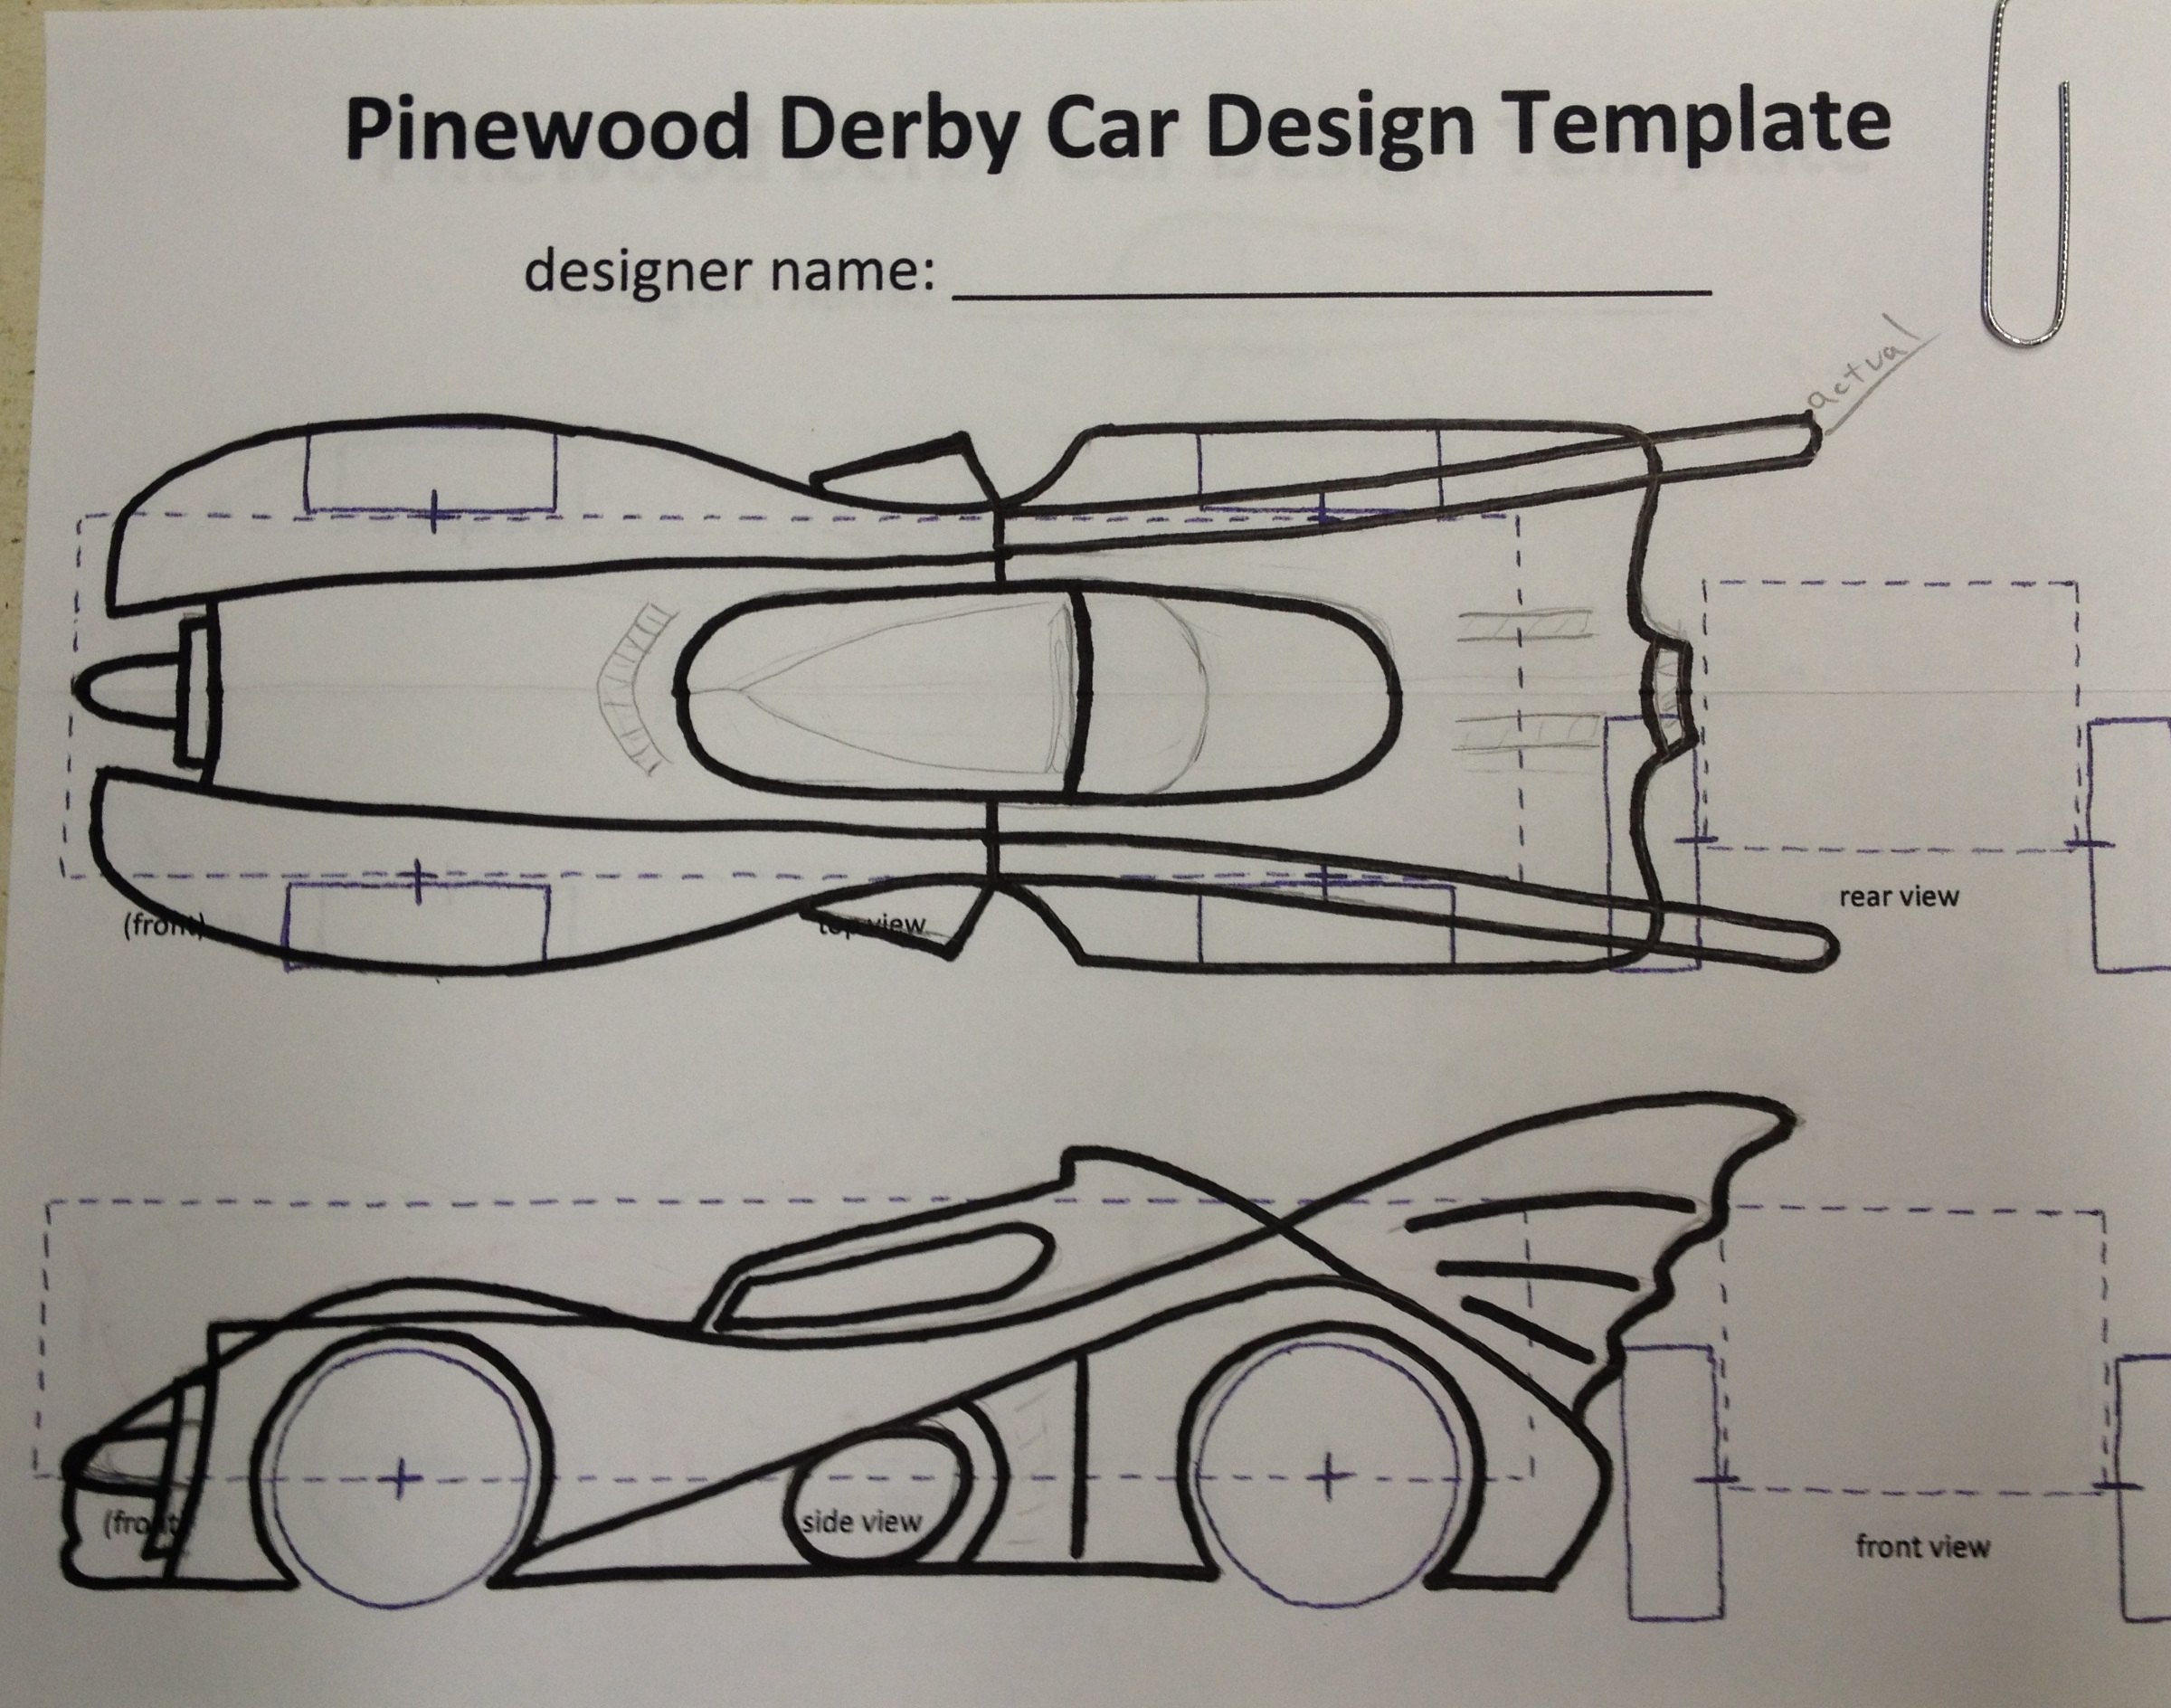 free pinewood derby car templates - how to build an awesome batmobile pinewood derby car